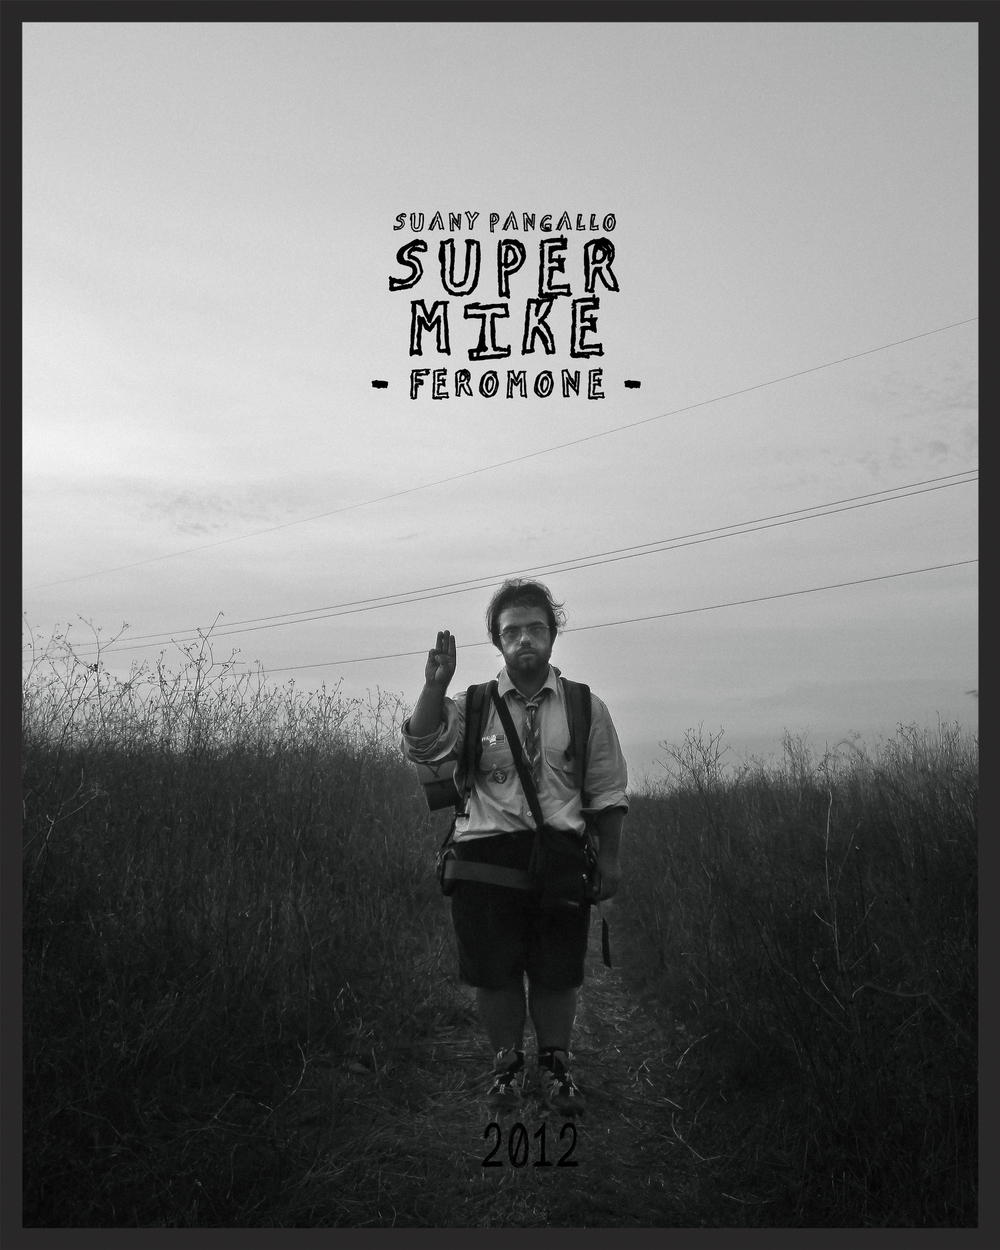 Super mike: Feromone - Official entry for the Sigur Rós Valtari mystery film competition.The story of a chase: a modern Tom Thumb with a rope instead of crumbsOfficial entry for the Sigur Rós Valtari mystery film competition.The story of a chase: a modern Tom Thumb with a rope instead of crumb